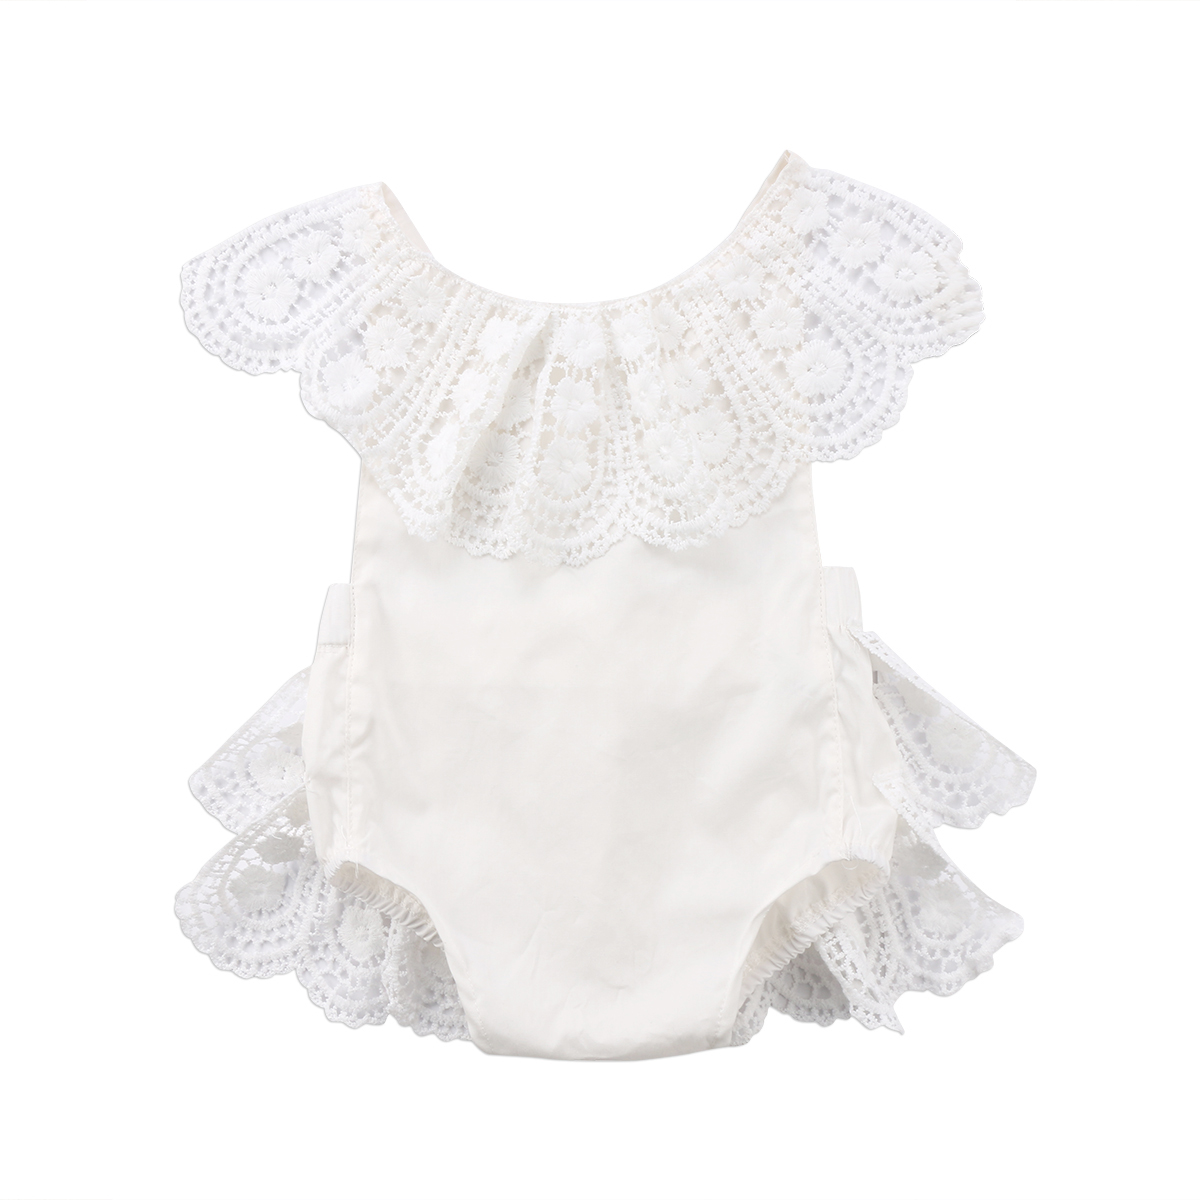 Summer Lovely Newborn Baby Girls Lace Flower Sleeveless Cotton Romper Outfits Sunsuit Clothes 2017 floral baby girl clothes summer sleeveless flower romper bodysuit ruffles halter jumpsuit headband 2pcs outfits sunsuit